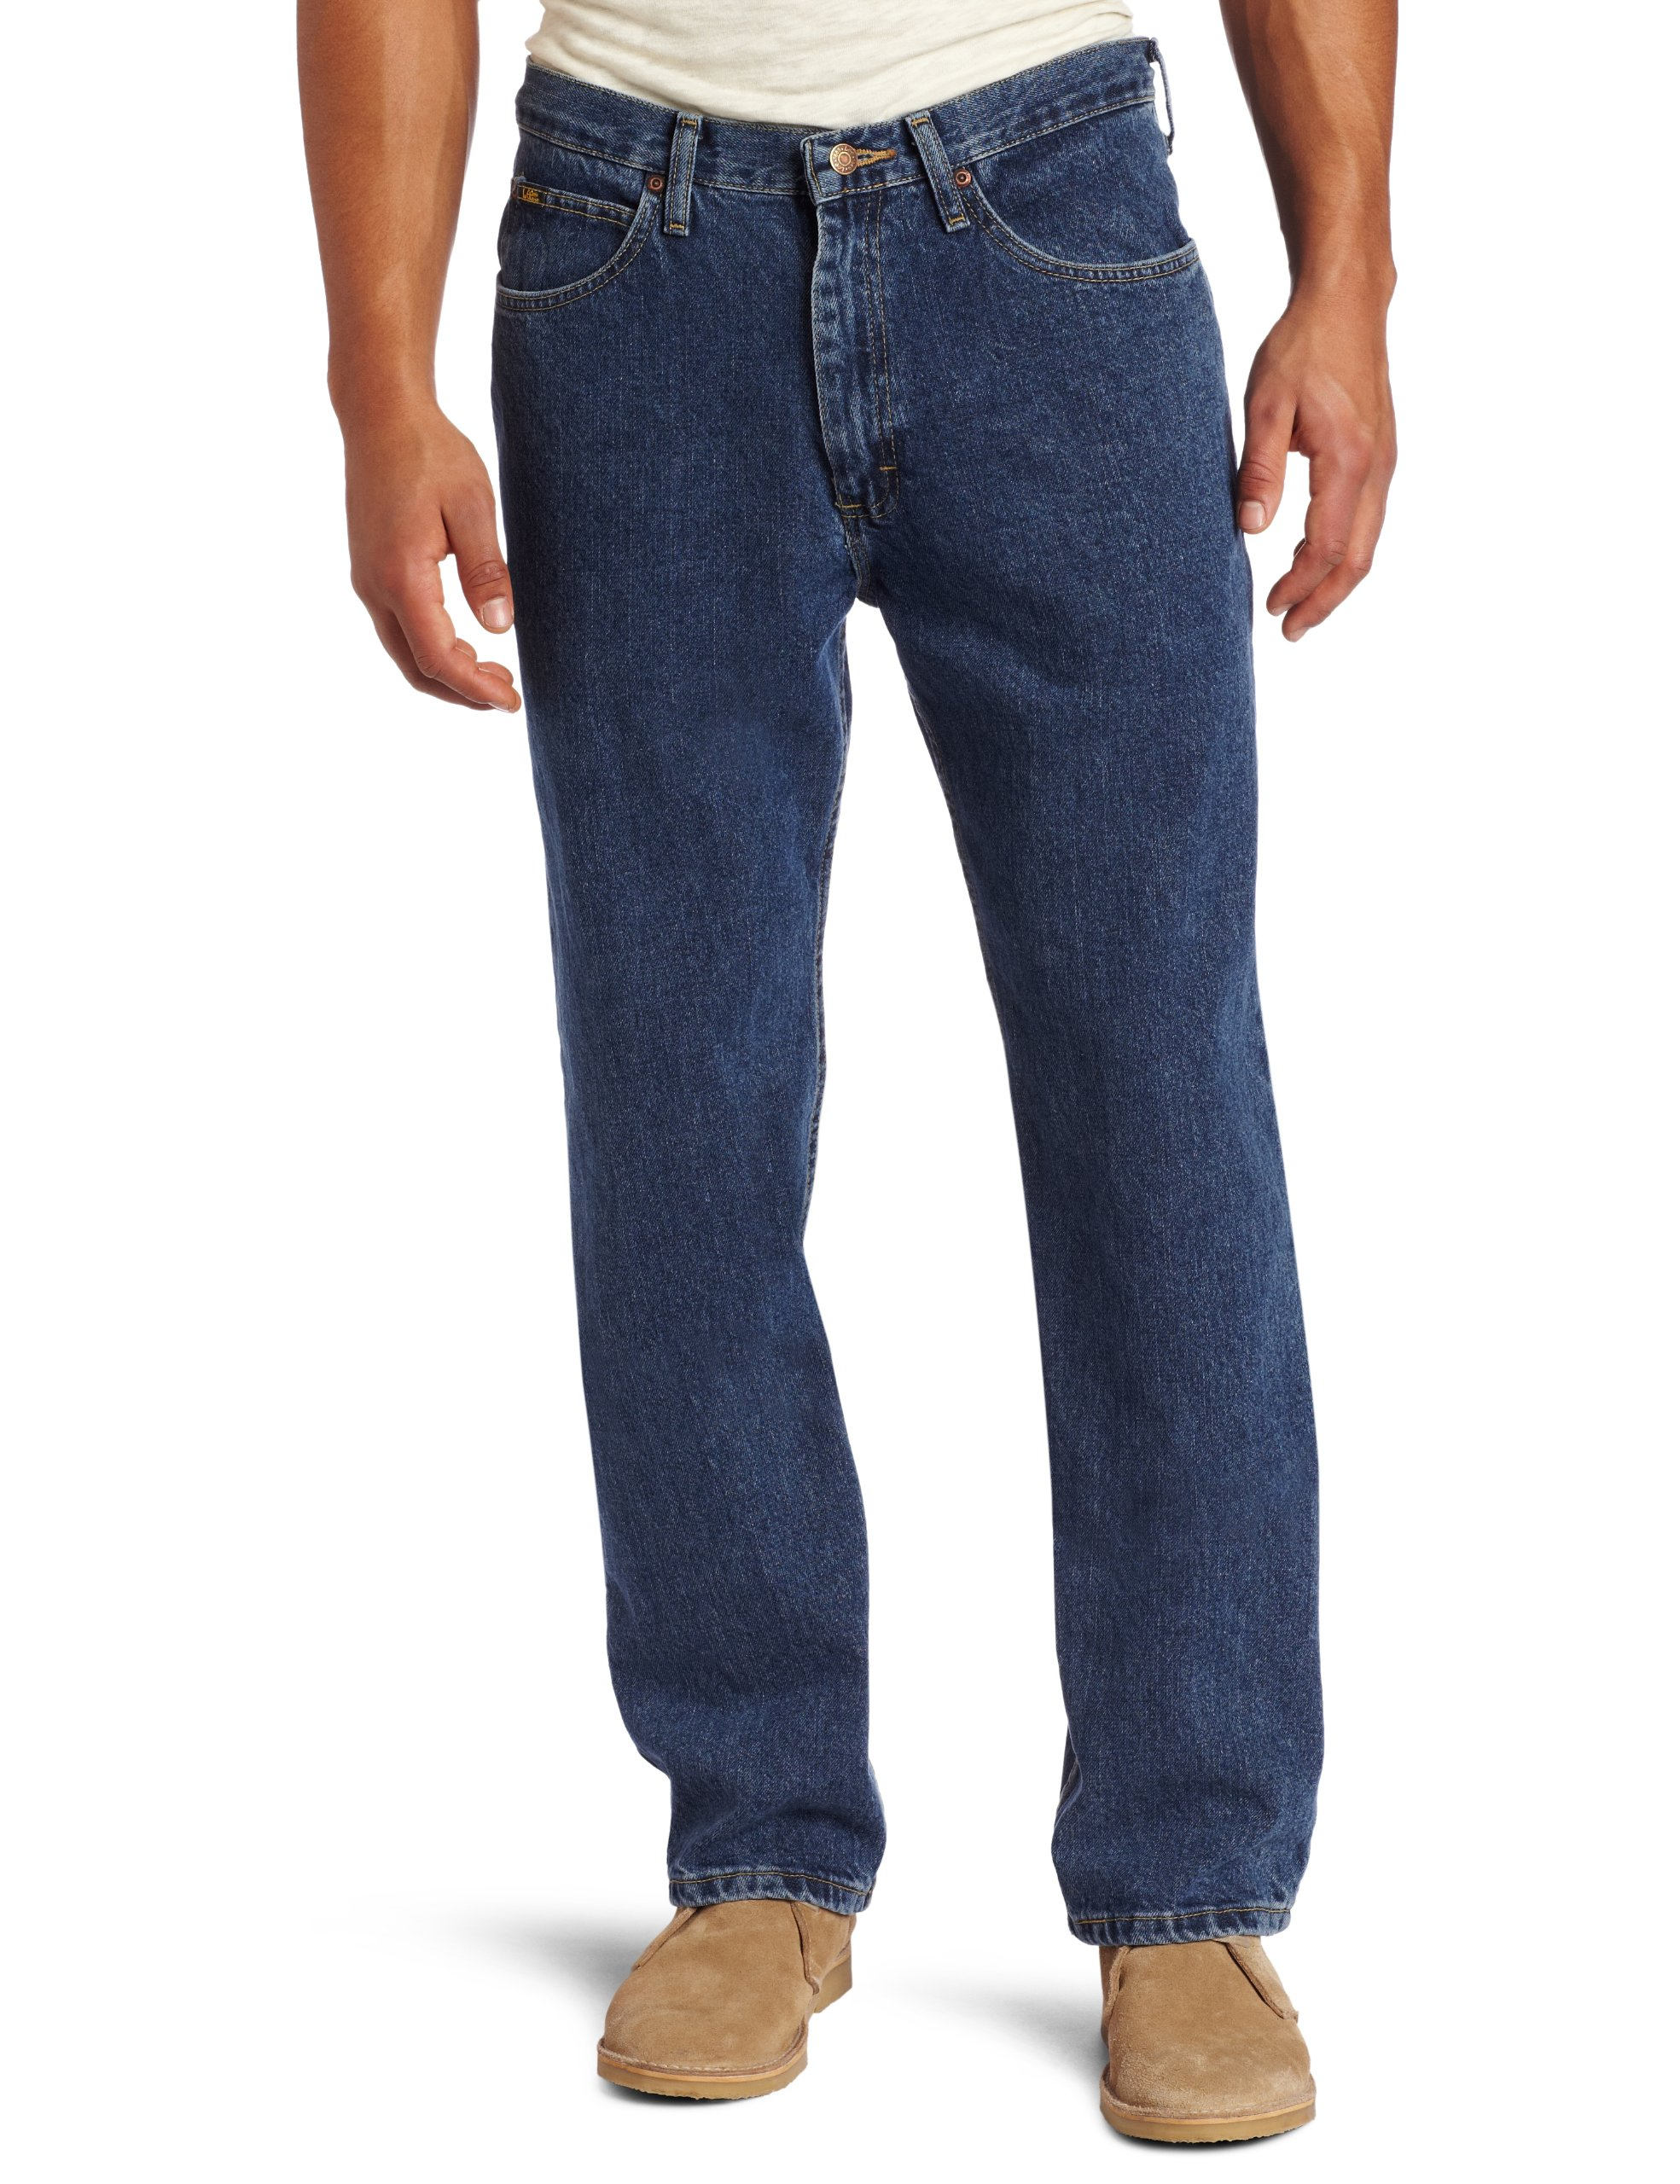 LEE Men's Relaxed Fit Straight Leg Jean, Medium Stone, 30W x 29L by LEE